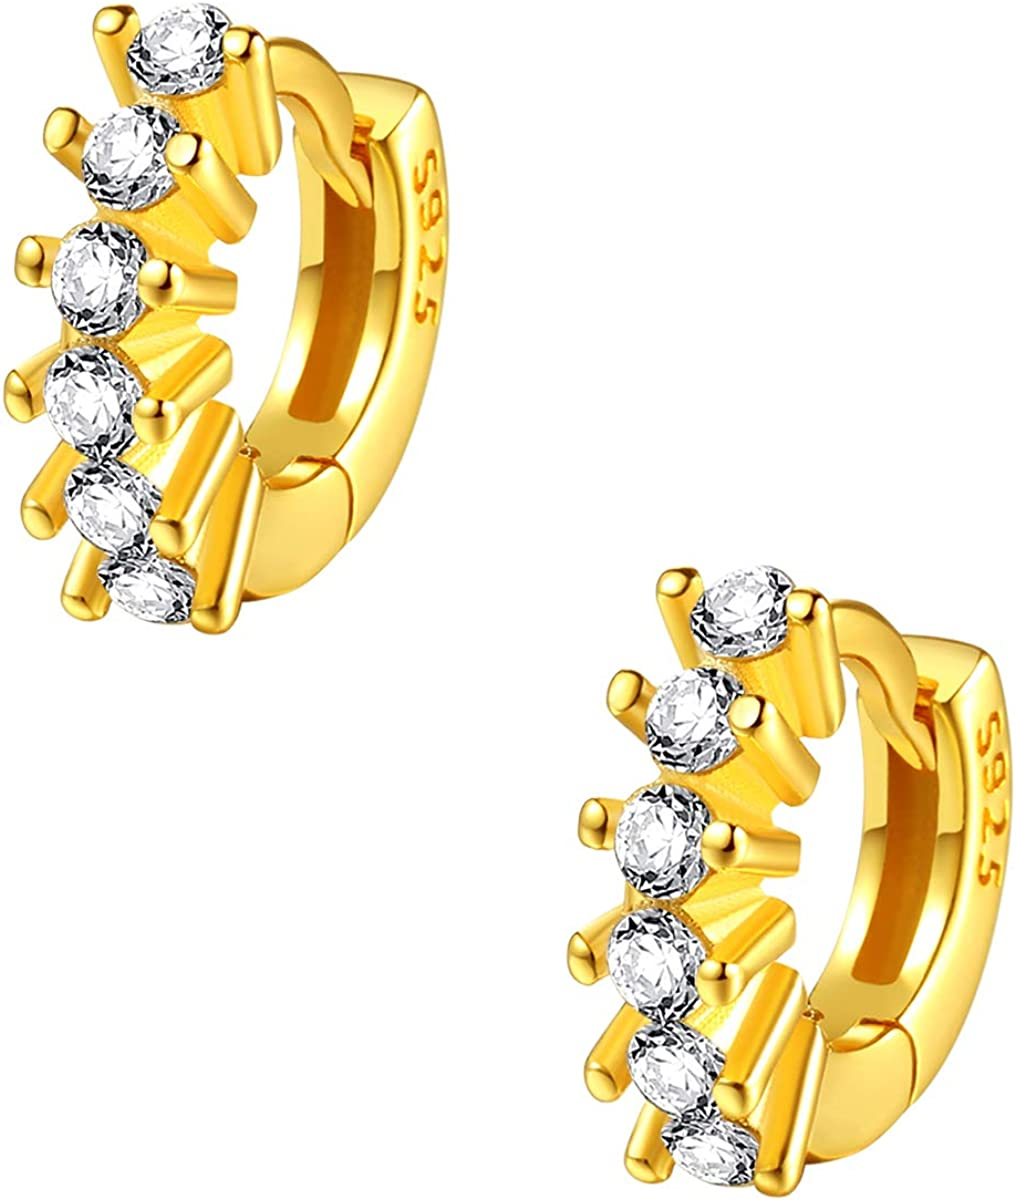 Happiness Ranking integrated Online limited product 1st place Boutique Women Helix Earrings Silver Sterling Sma Gold